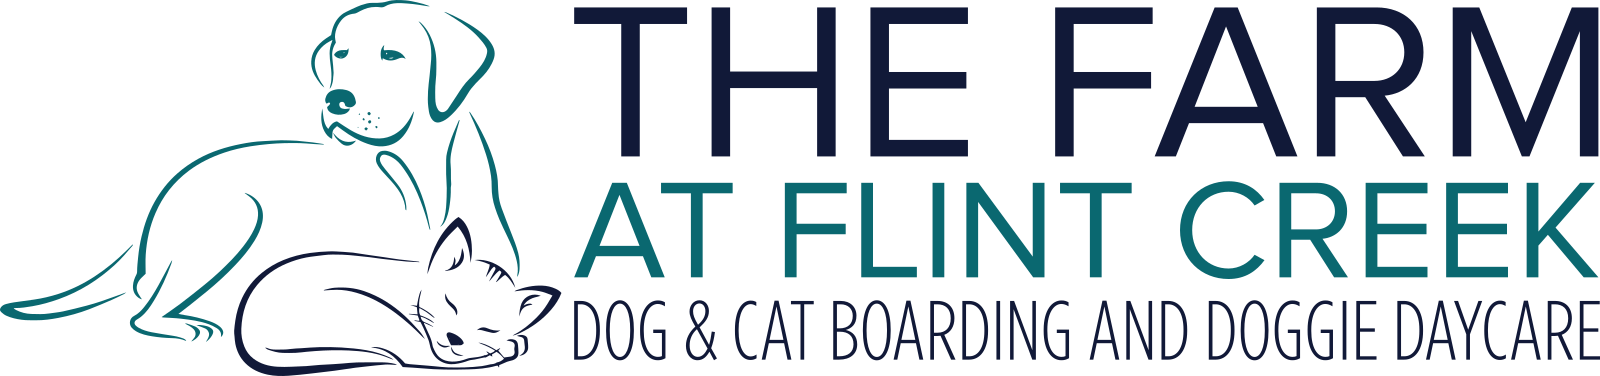 The Farm at Flint Creek - Dog & Cat Boarding and Doggie Daycare